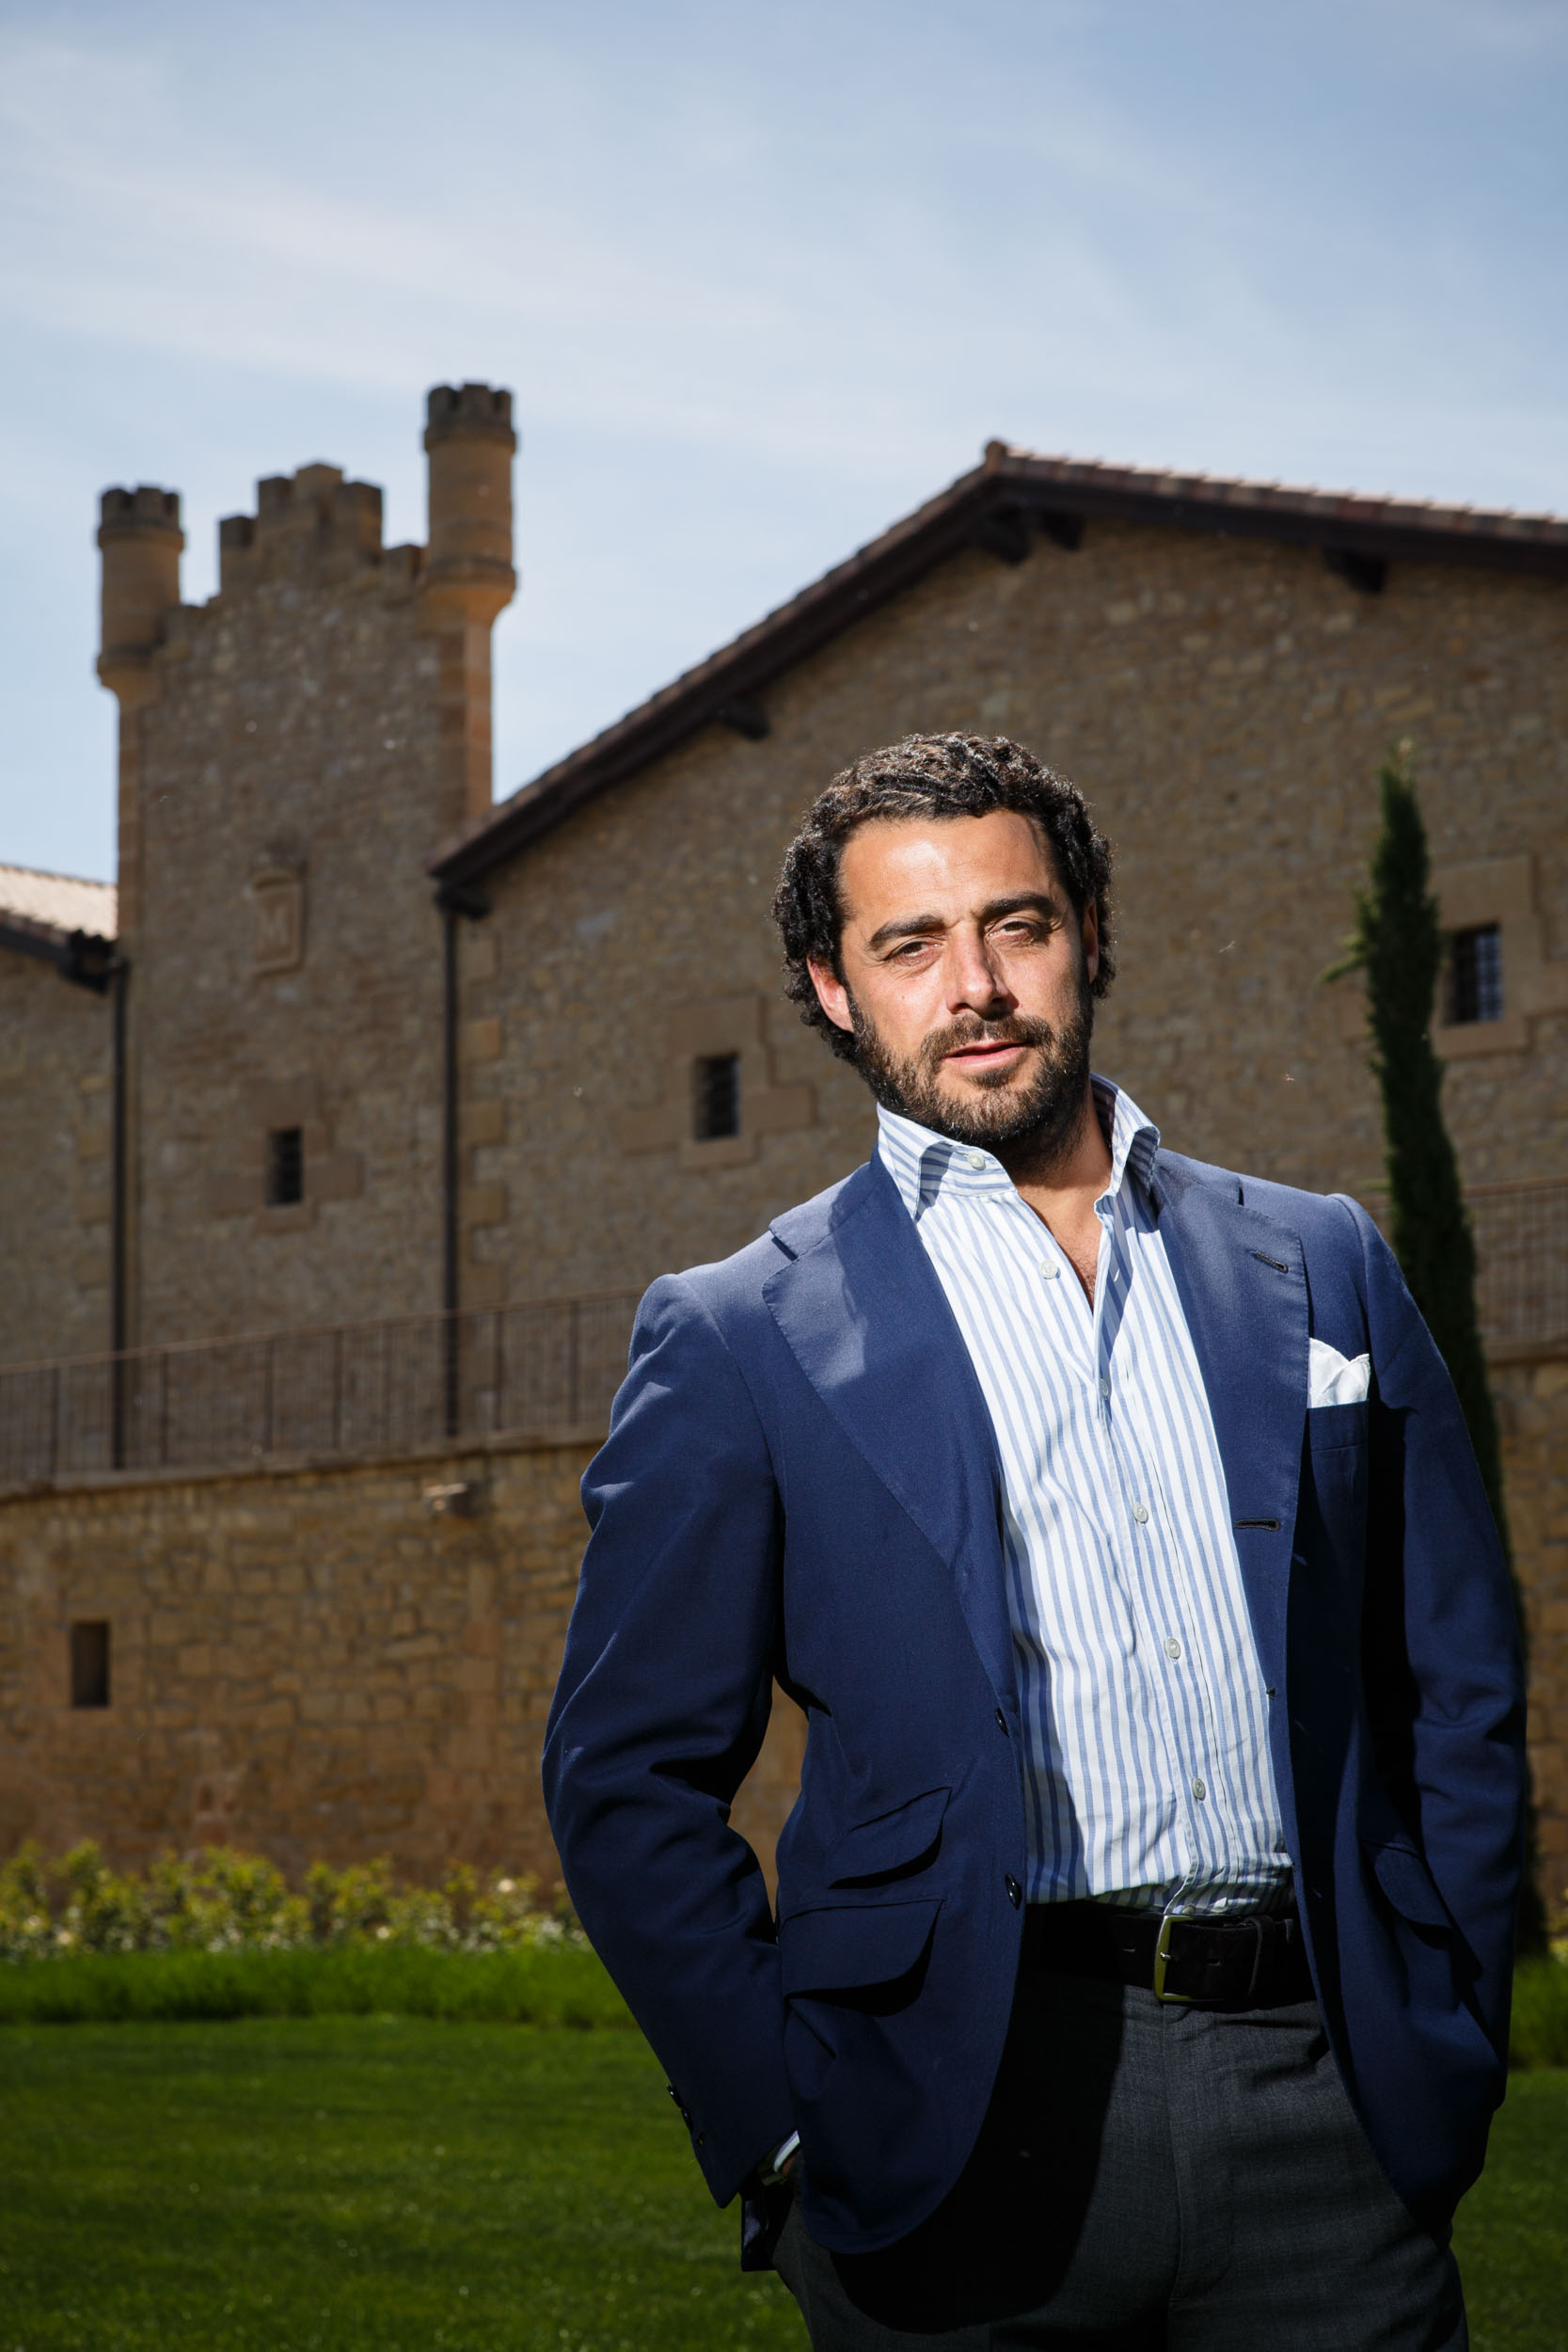 16/5/12 Vicente Dalmau Cebrián-Sagarriga, owner of Marqués de Murrieta Winery, in front of Castillo Ygay building, Finca Ygay, Logroño, La Rioja, Spain. Photos by James Sturcke Fotografía | www.sturcke.org